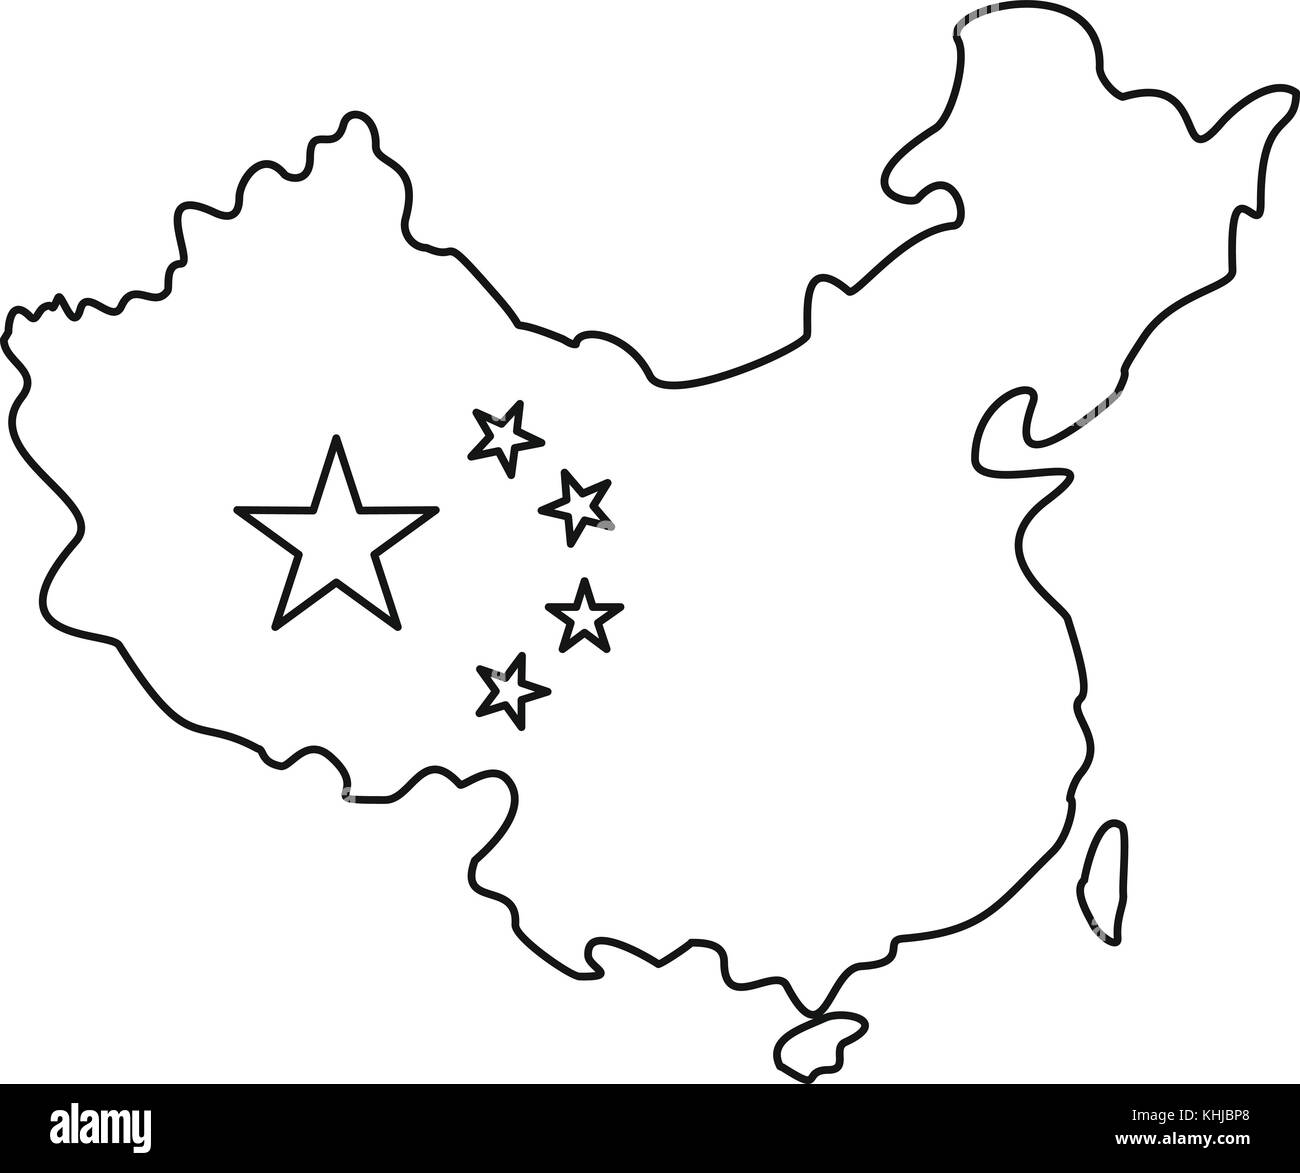 China Map Black and White Stock Photos & Images   Alamy